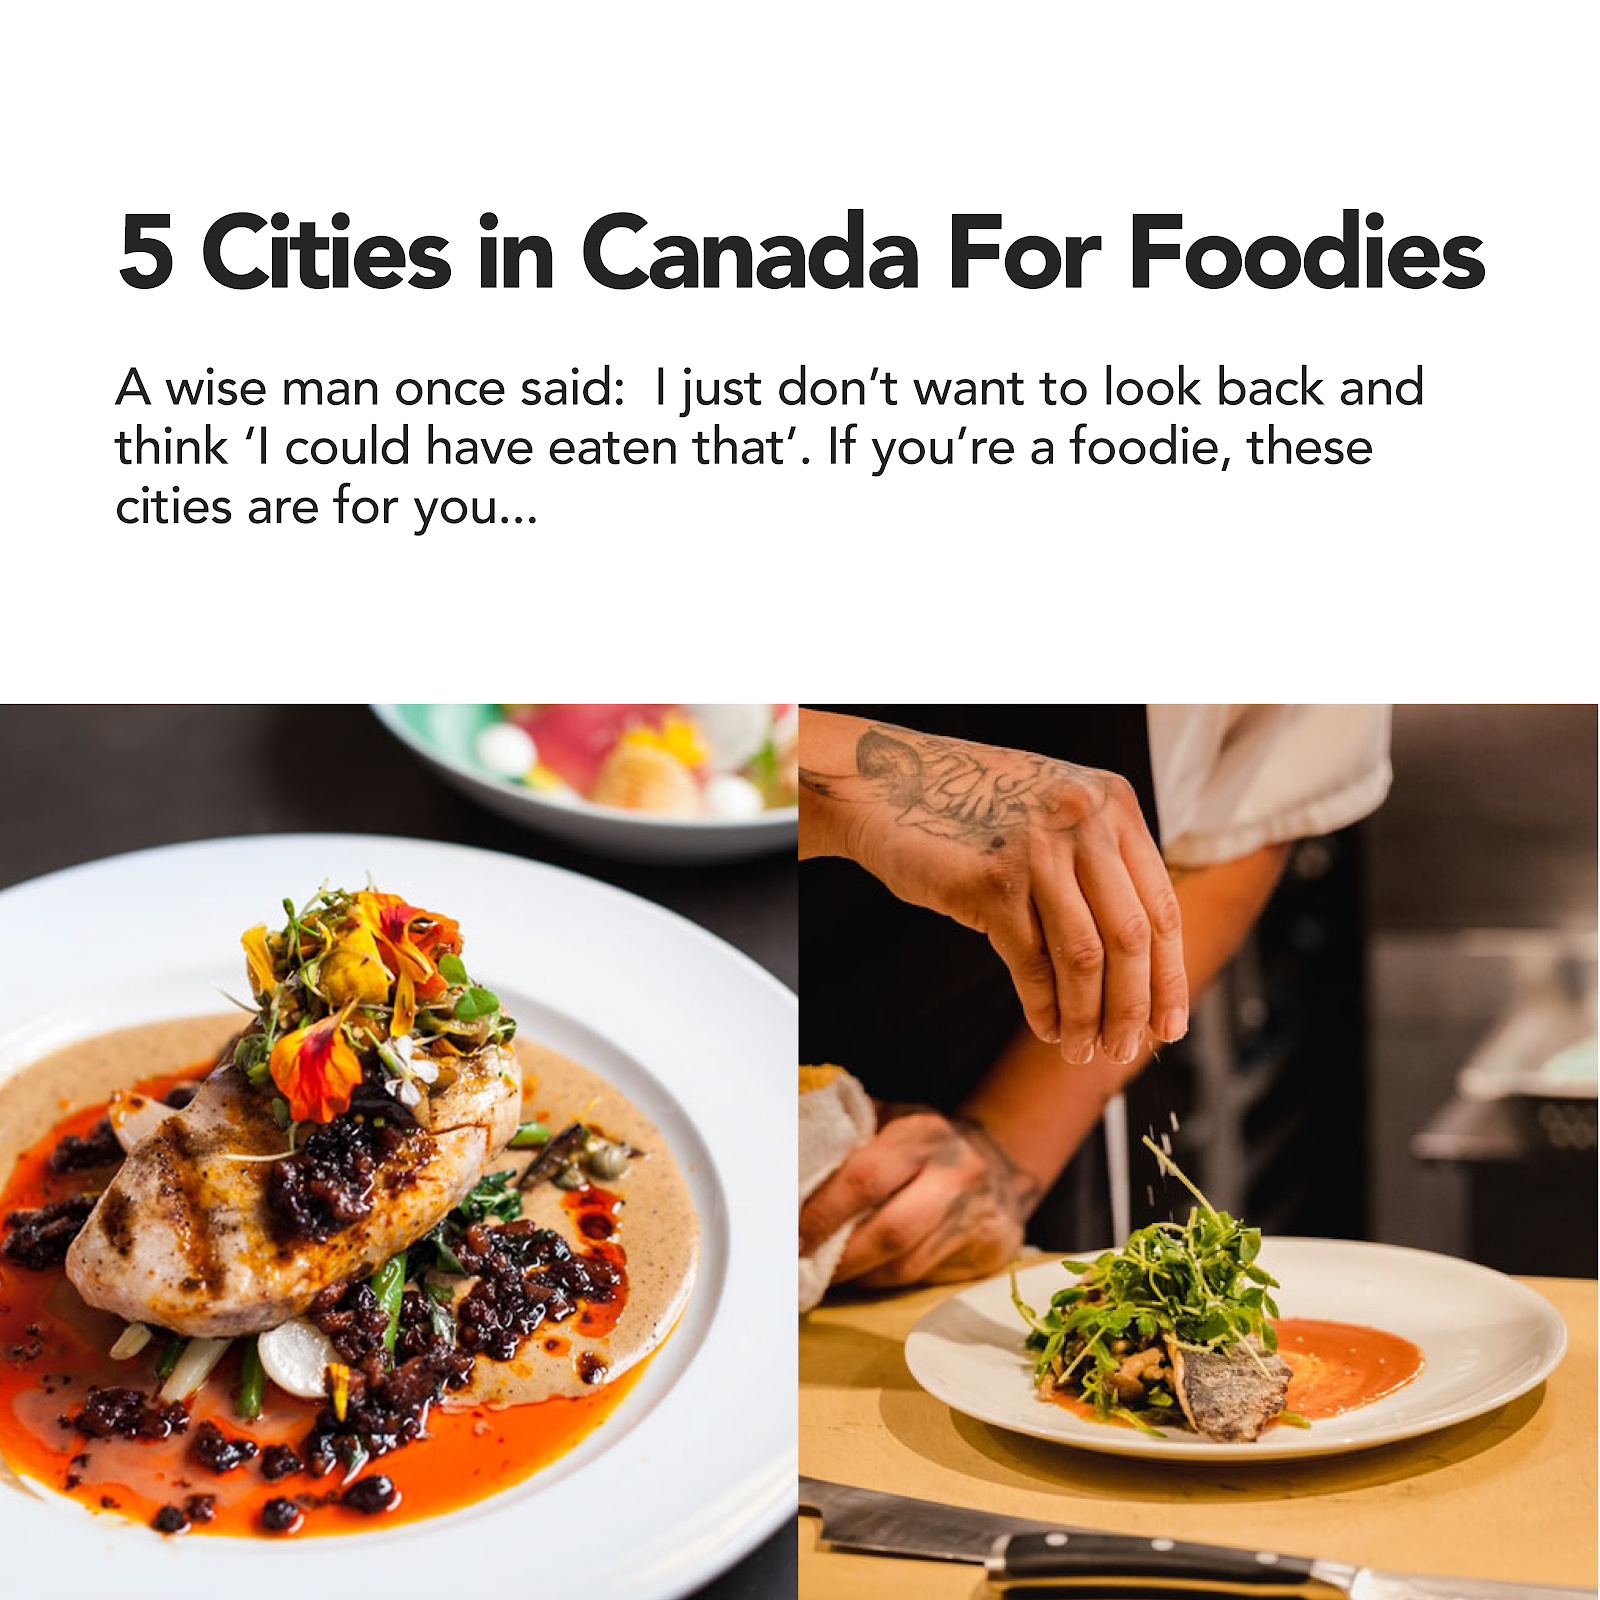 5 cities in canada for foodies toronto montreal vancouver calgary edmonton